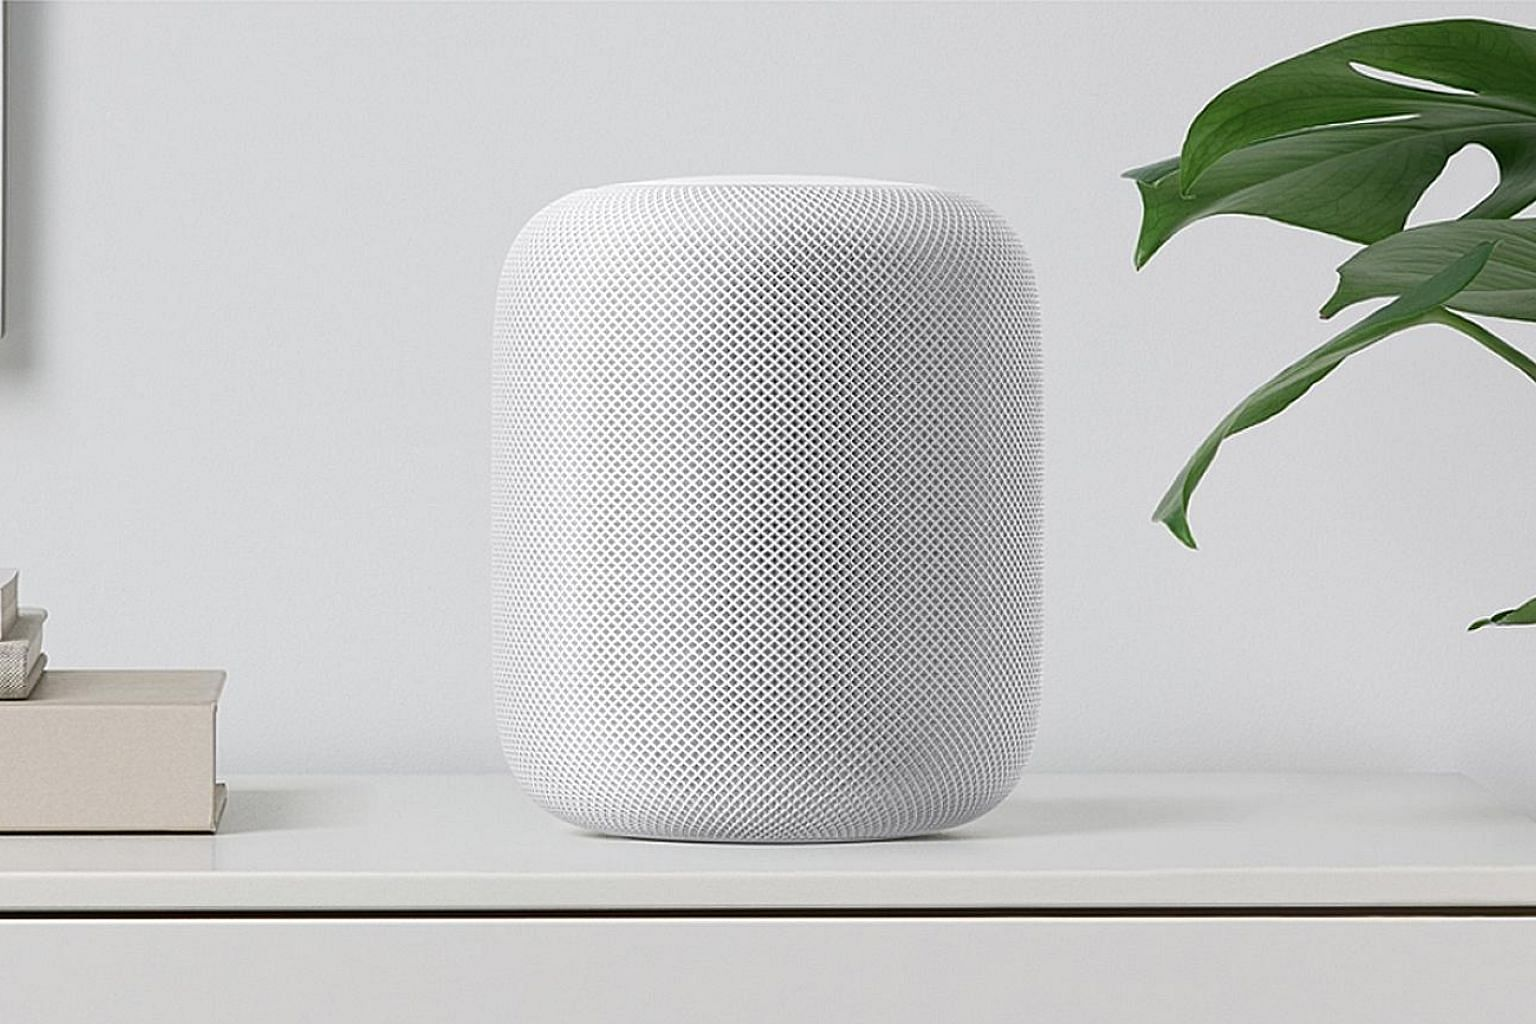 Minimalist and sleek, Apple's HomePod has seven tweeters, each with its own amplifier.